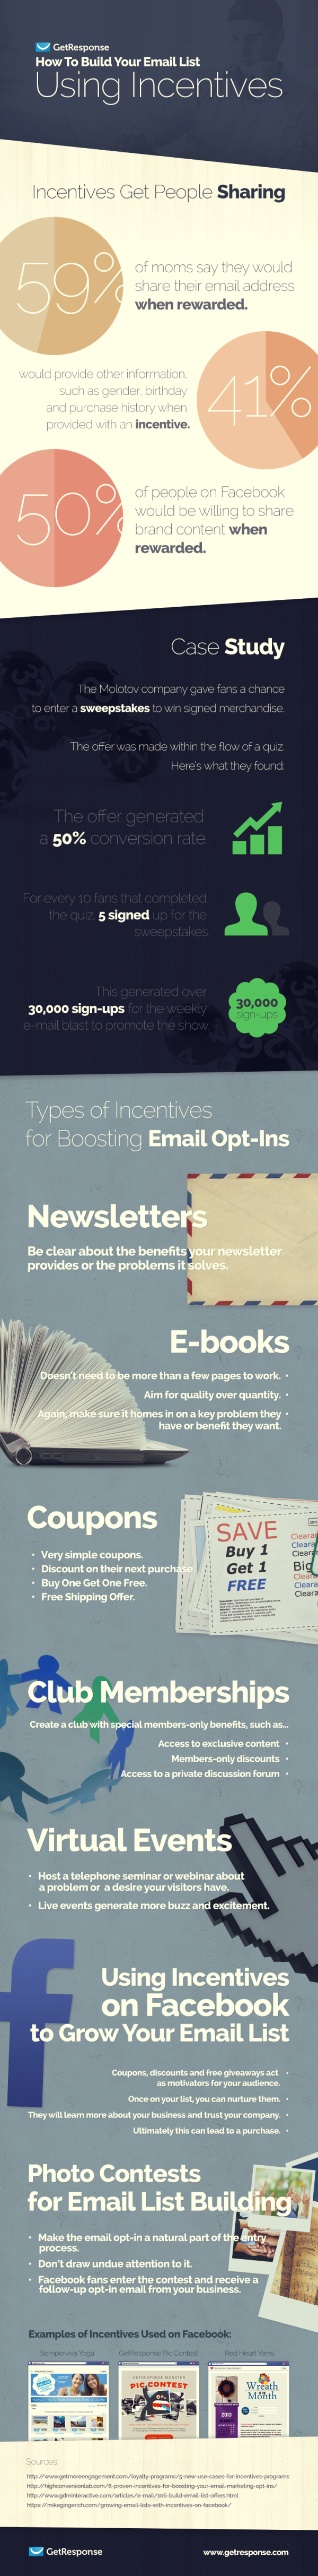 Infographic - How to Build Your Email List Using Incentives